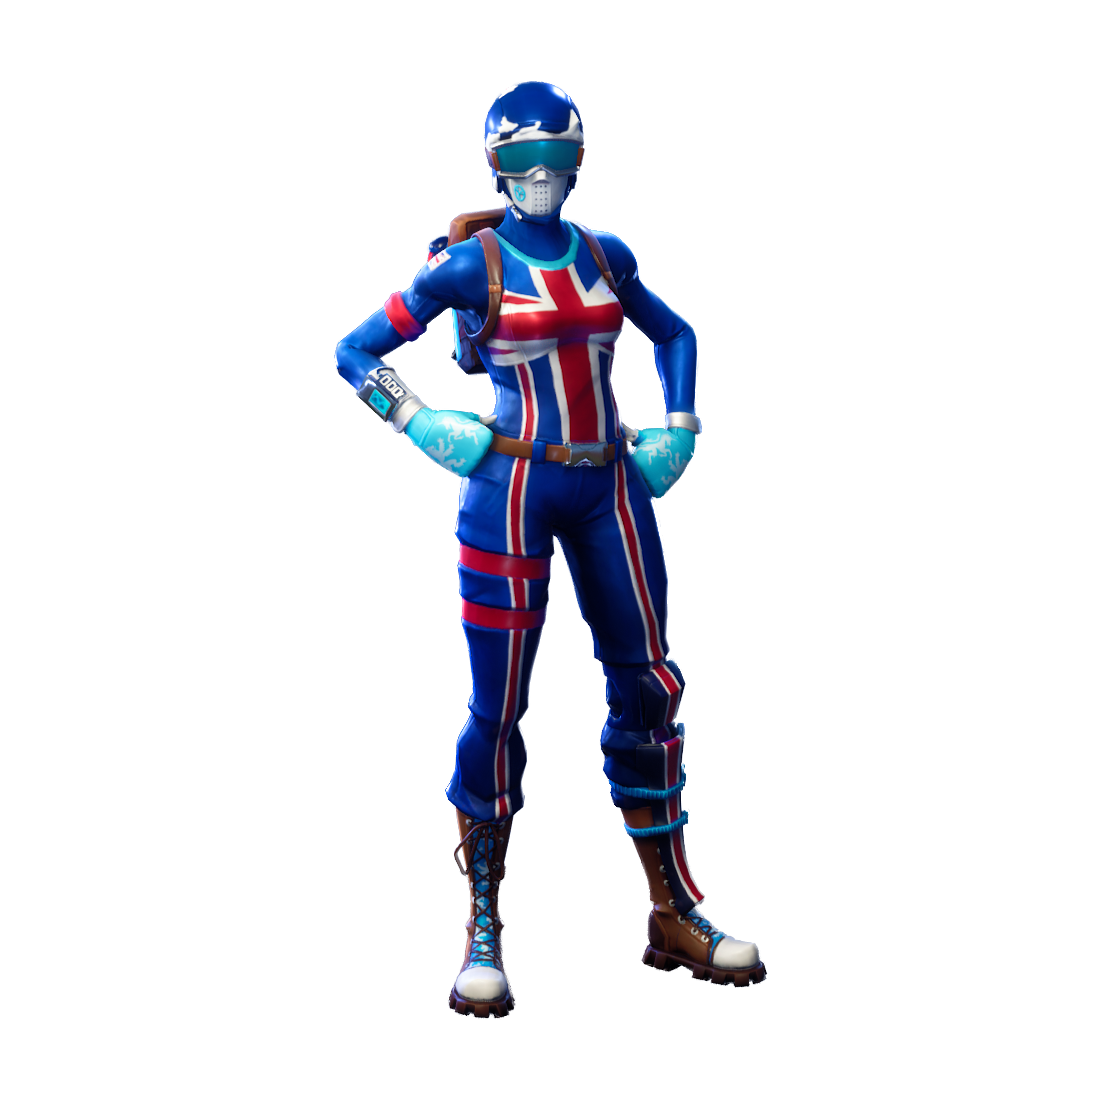 Blue Toy Electric Royale Game Fortnite Battle PNG Image